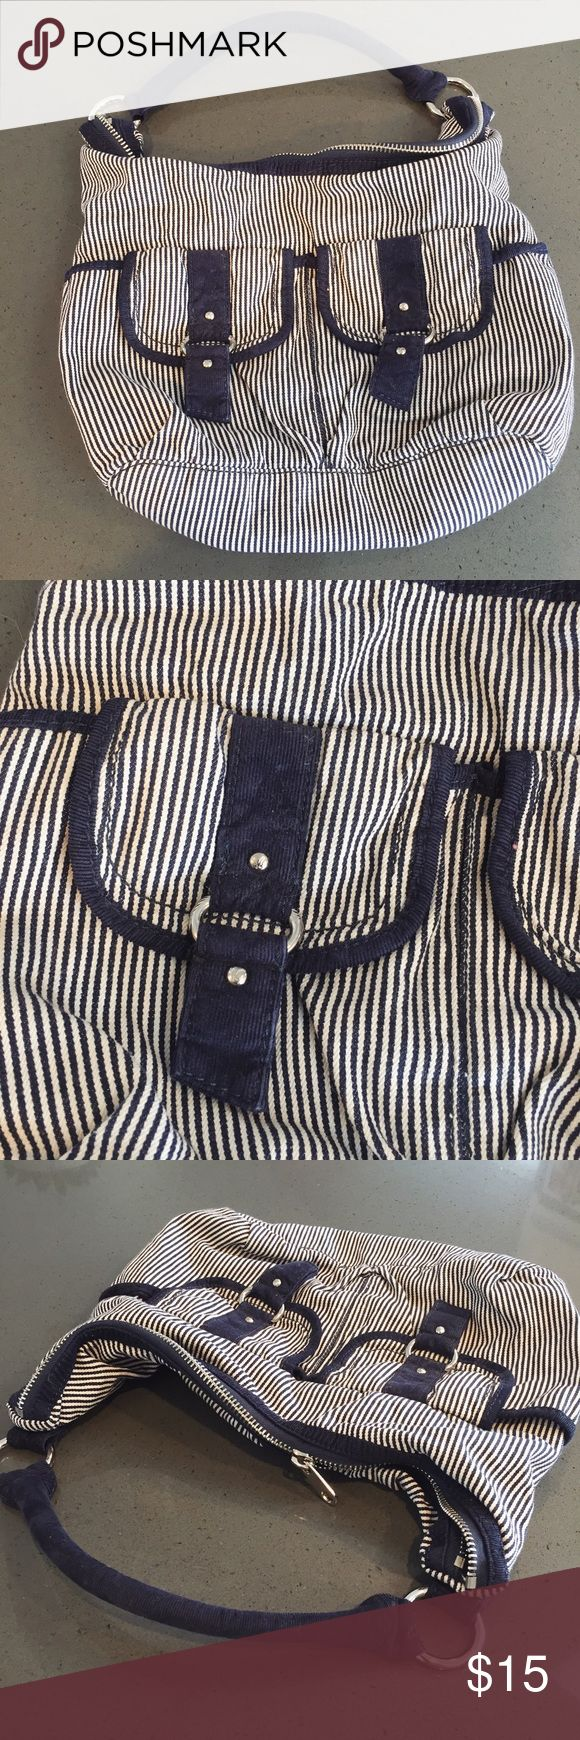 "American Eagle Purse American Eagle Purse in navy/white stripes and silver hardware. Barely used, in excellent condition. Two outside pockets. Inside there's one zip pocket and 2 open open pockets. Flat measurements (approximate): 15"" width, 9"" height, 6"" depth. American Eagle Outfitters Bags Hobos"